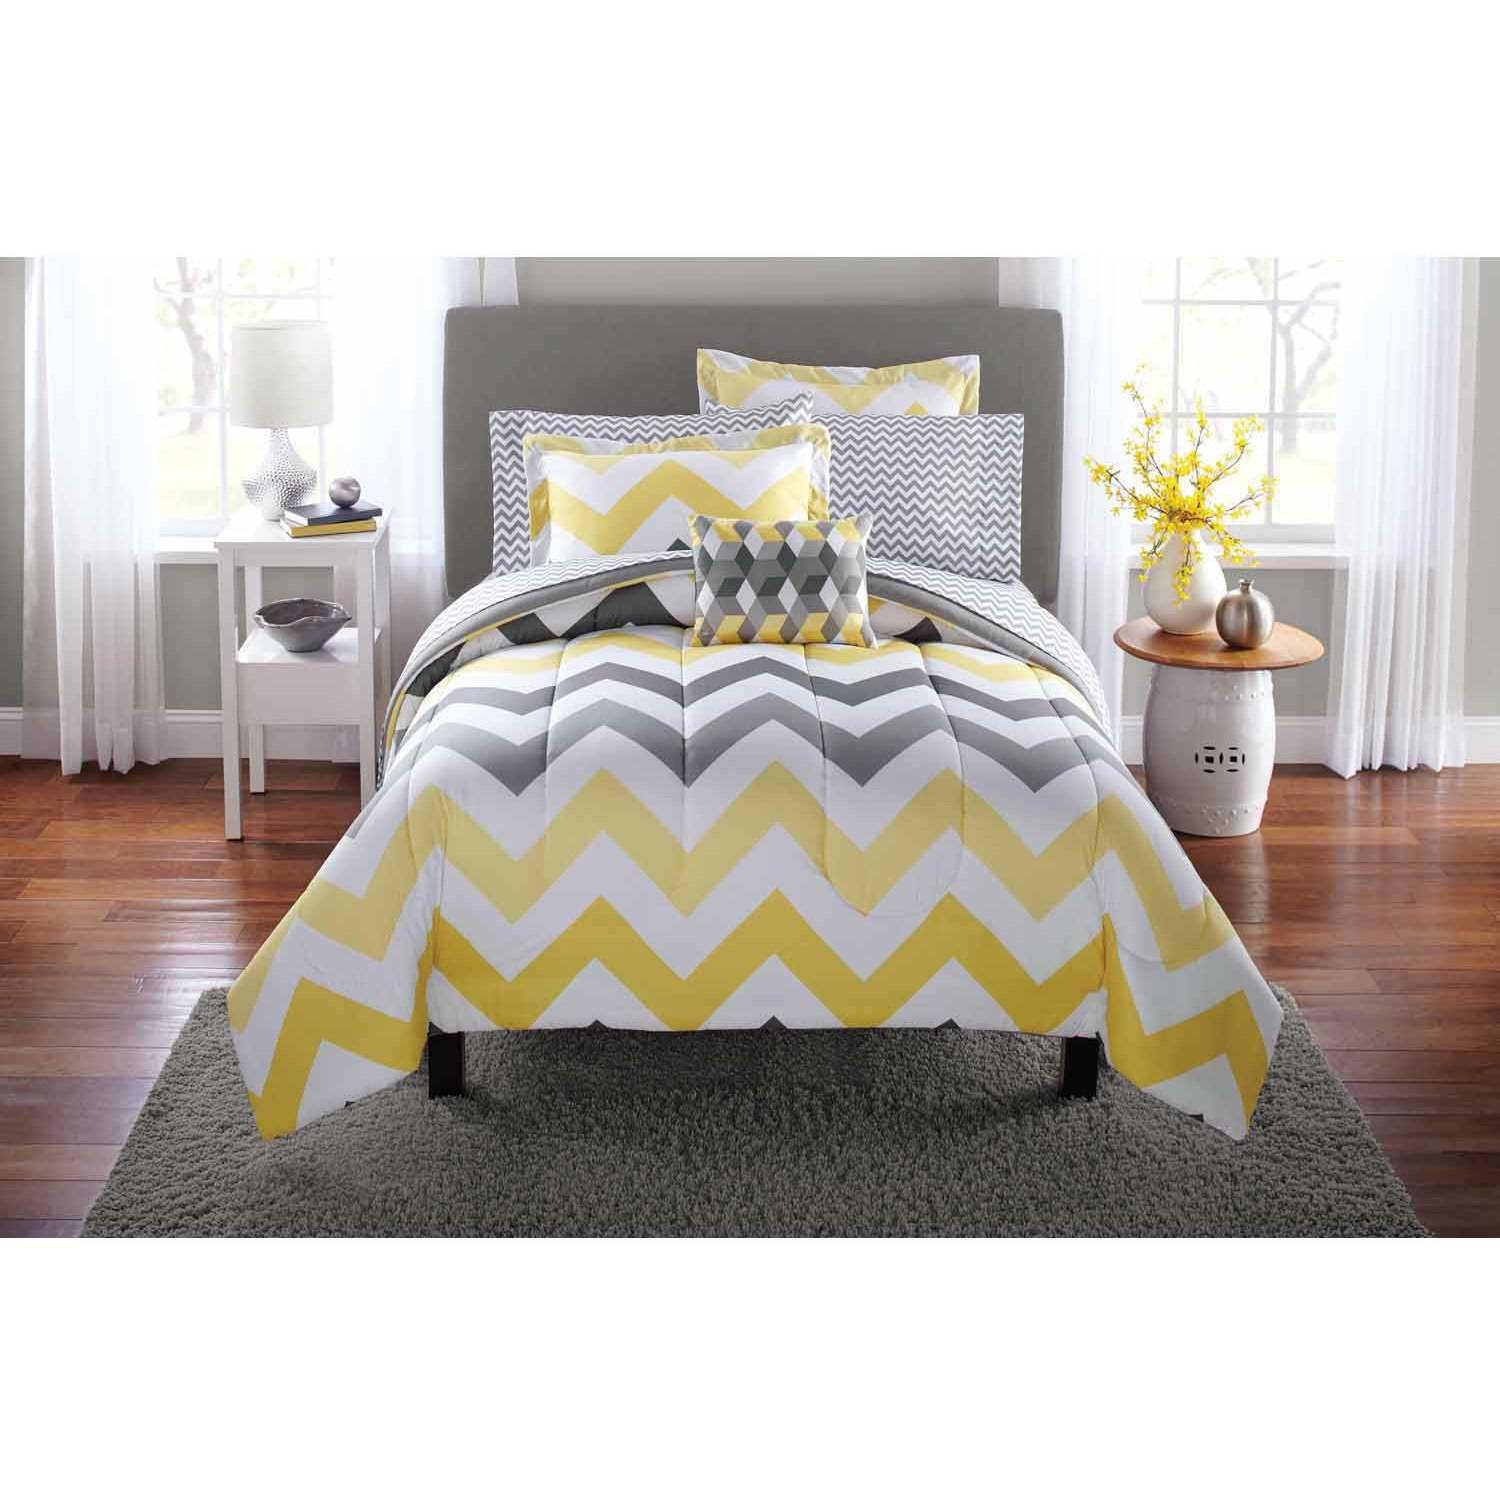 mainstays yellow grey chevron bed in a bag bedding comforter set walmartcom